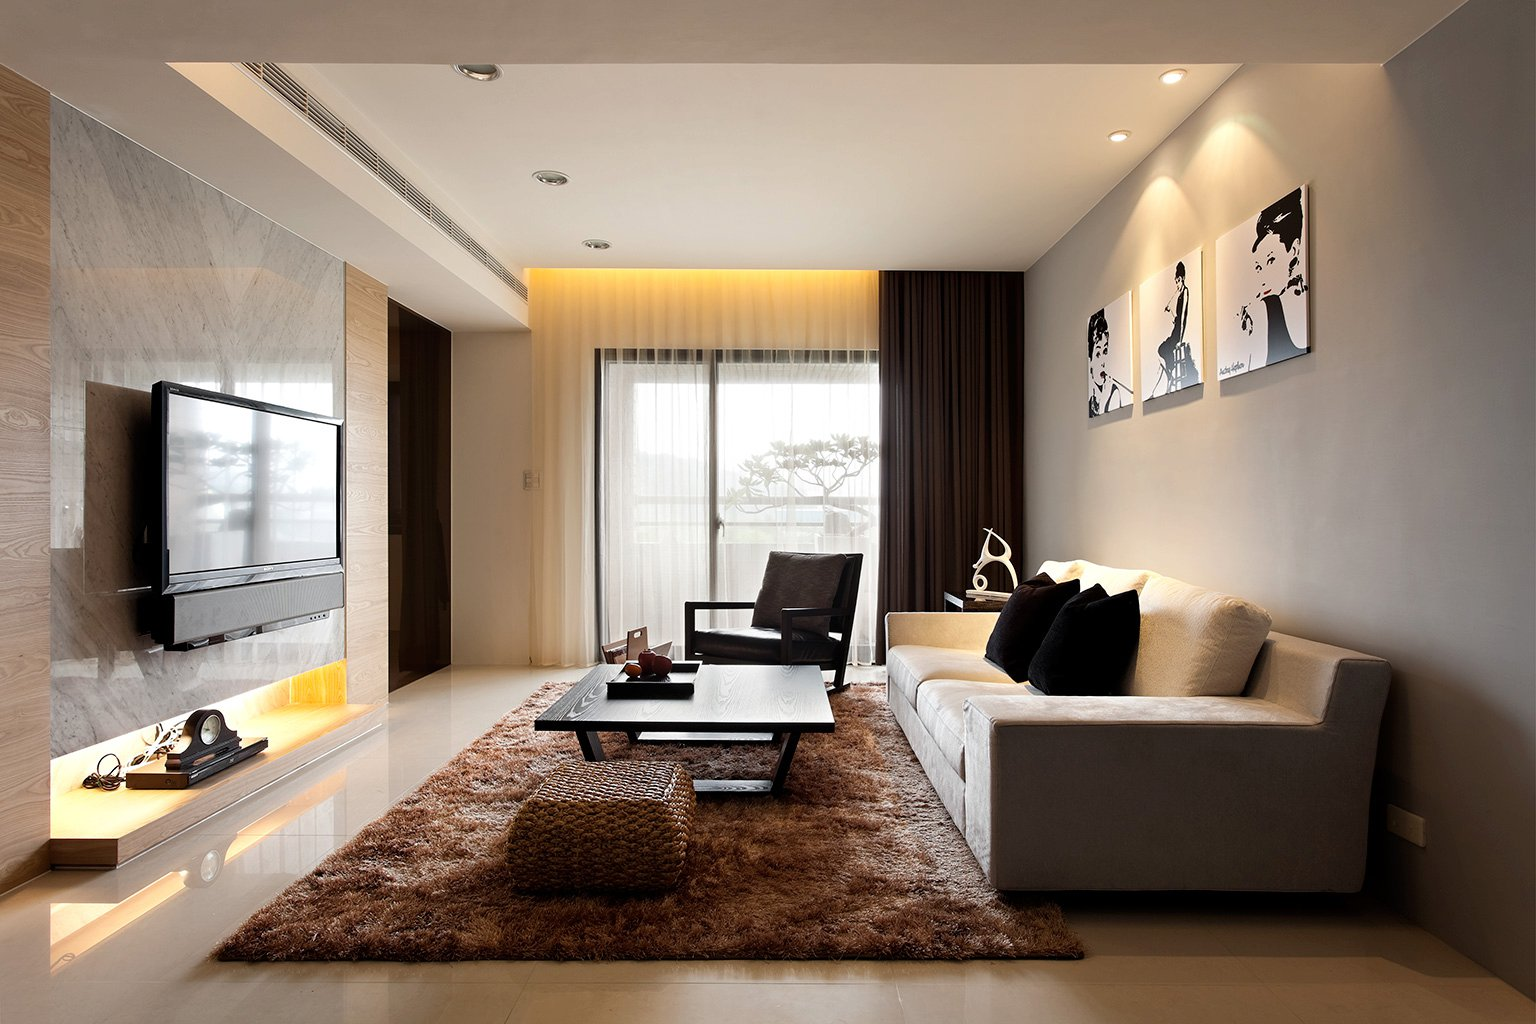 Modern minimalist decor with a homey flow for A living room design